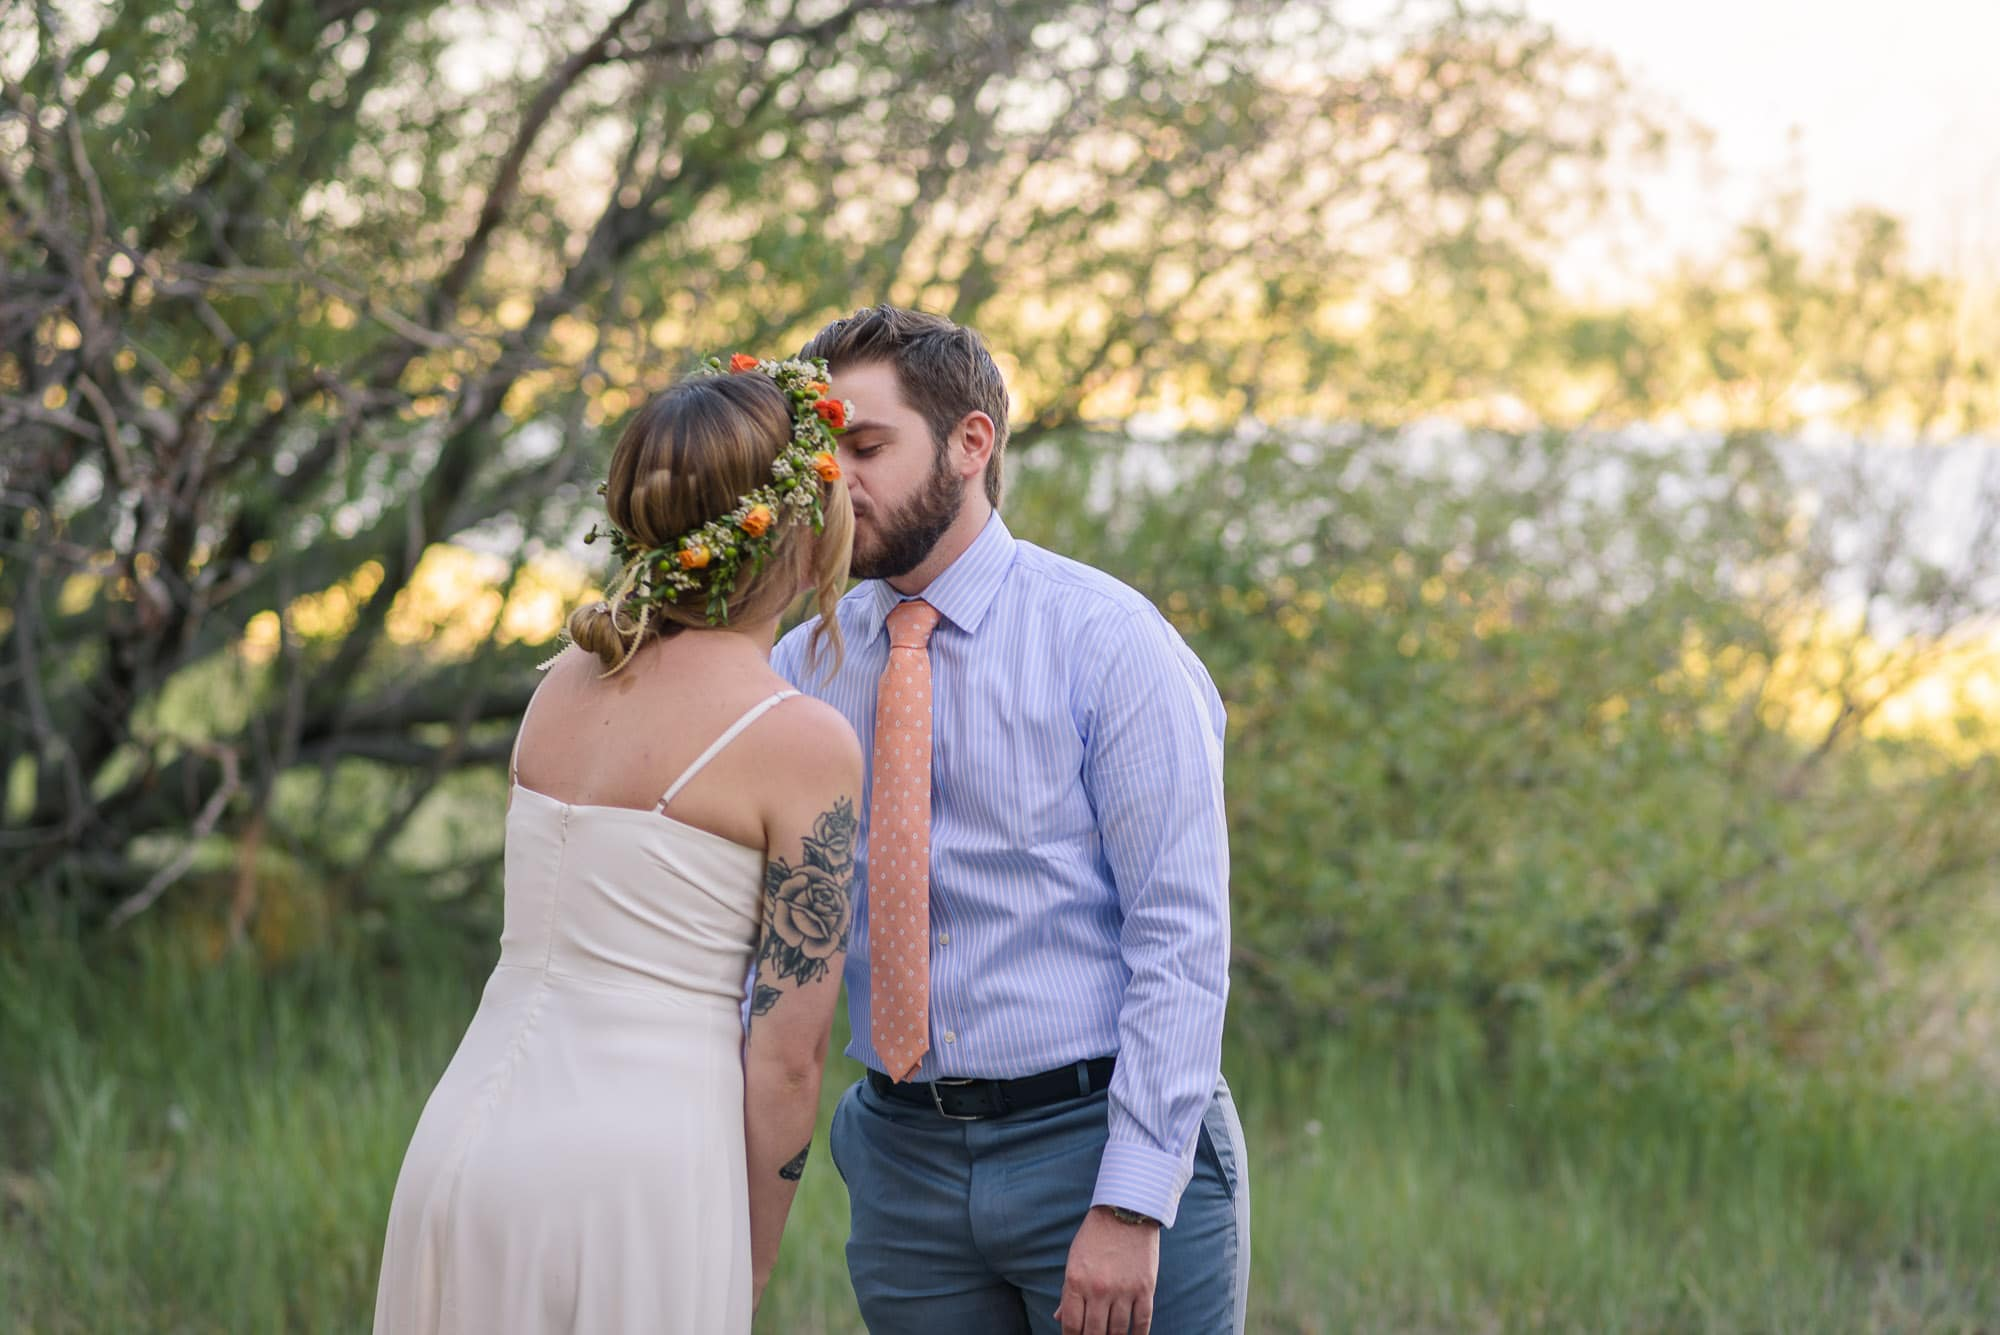 007_Alan_and_Heidi_Kensey_Josh_Big_Bear_Elopement